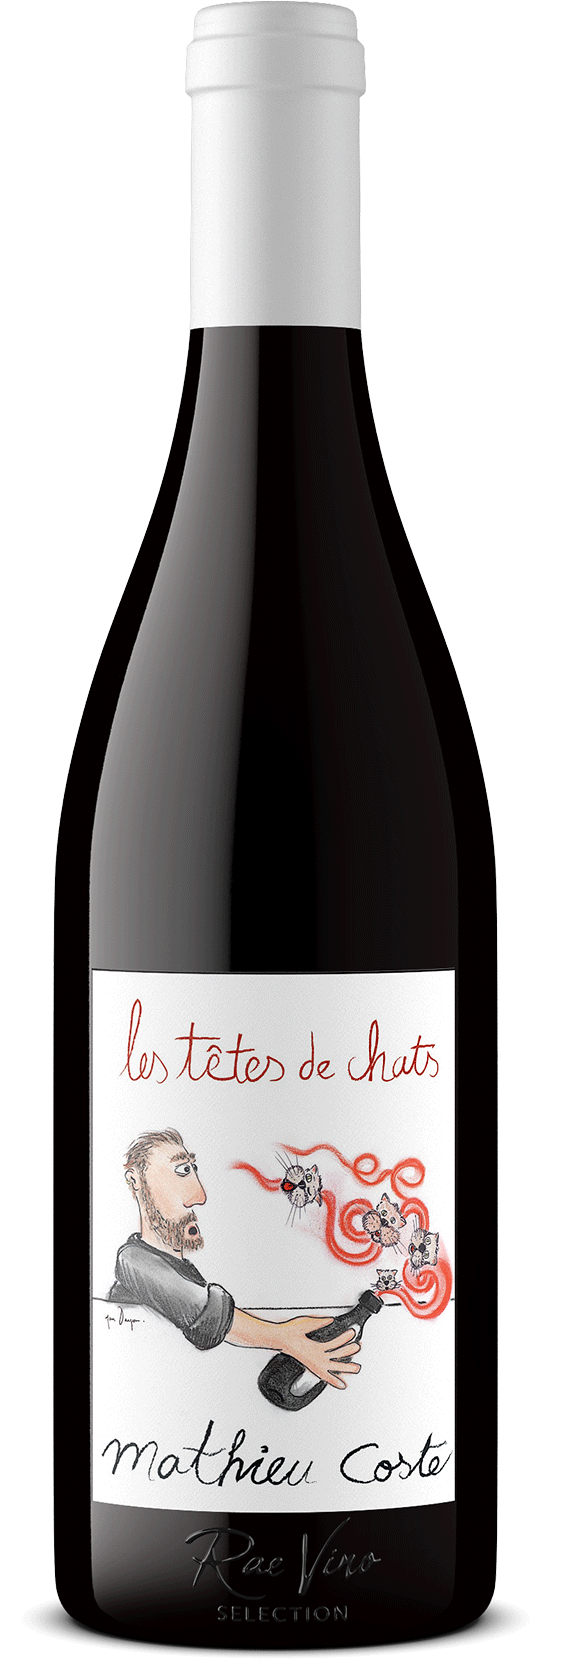 Domaine Mathieu Coste : 'Les Tetes de Chats' : Red Blend | 2014